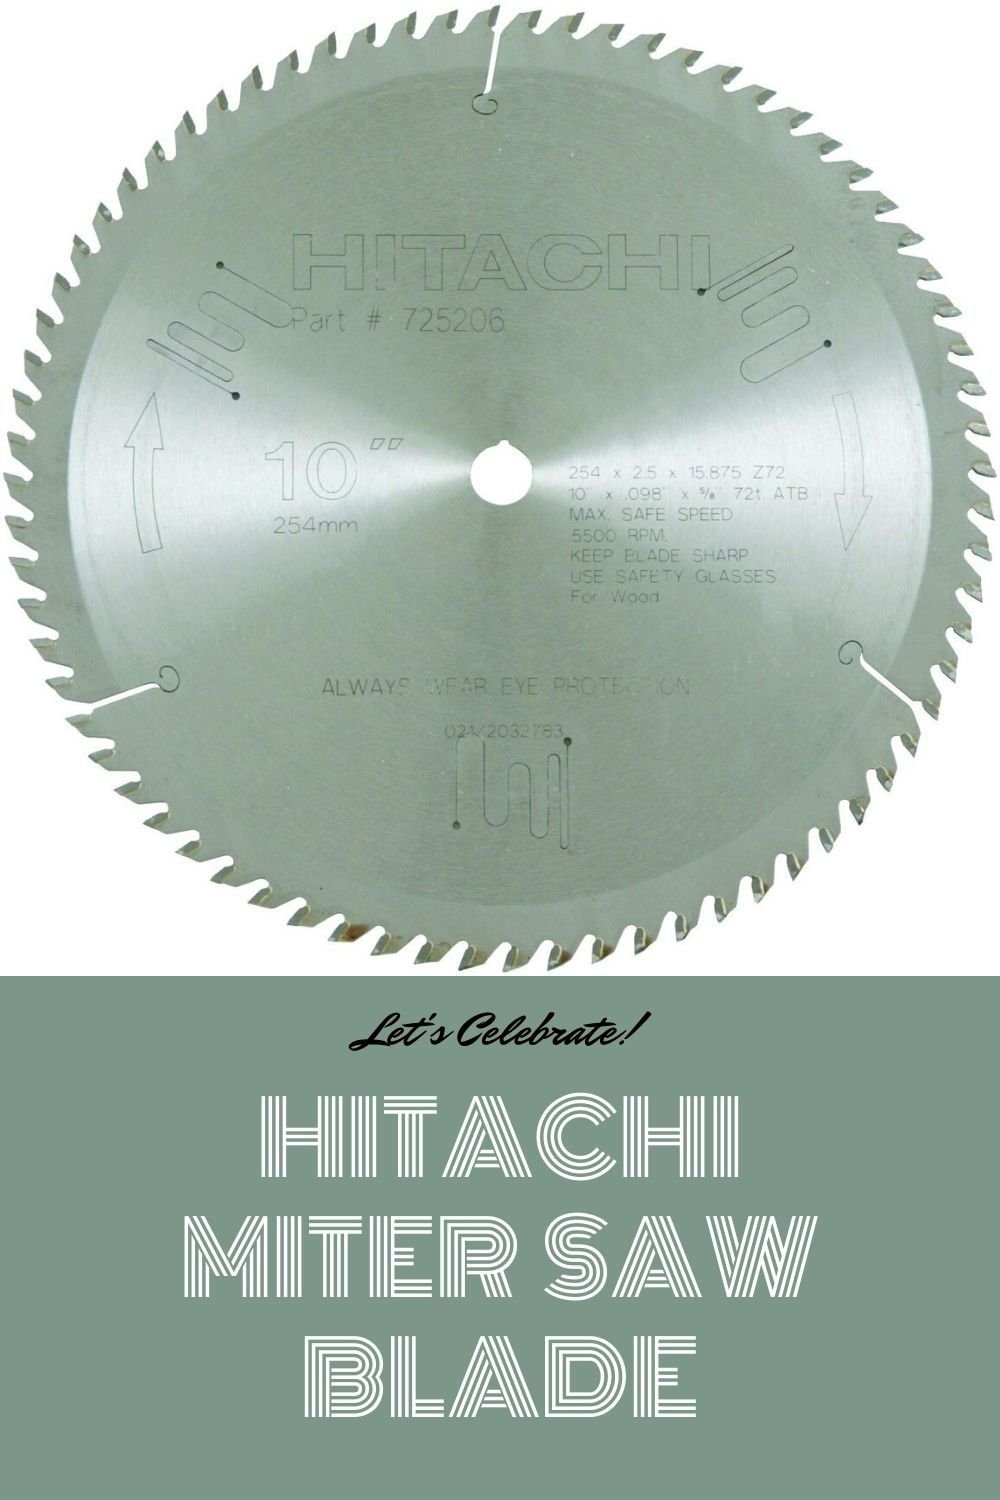 Hitachi Miter Saw Blade In 2020 Miter Saw Table Saw Blades Miter Saw Table